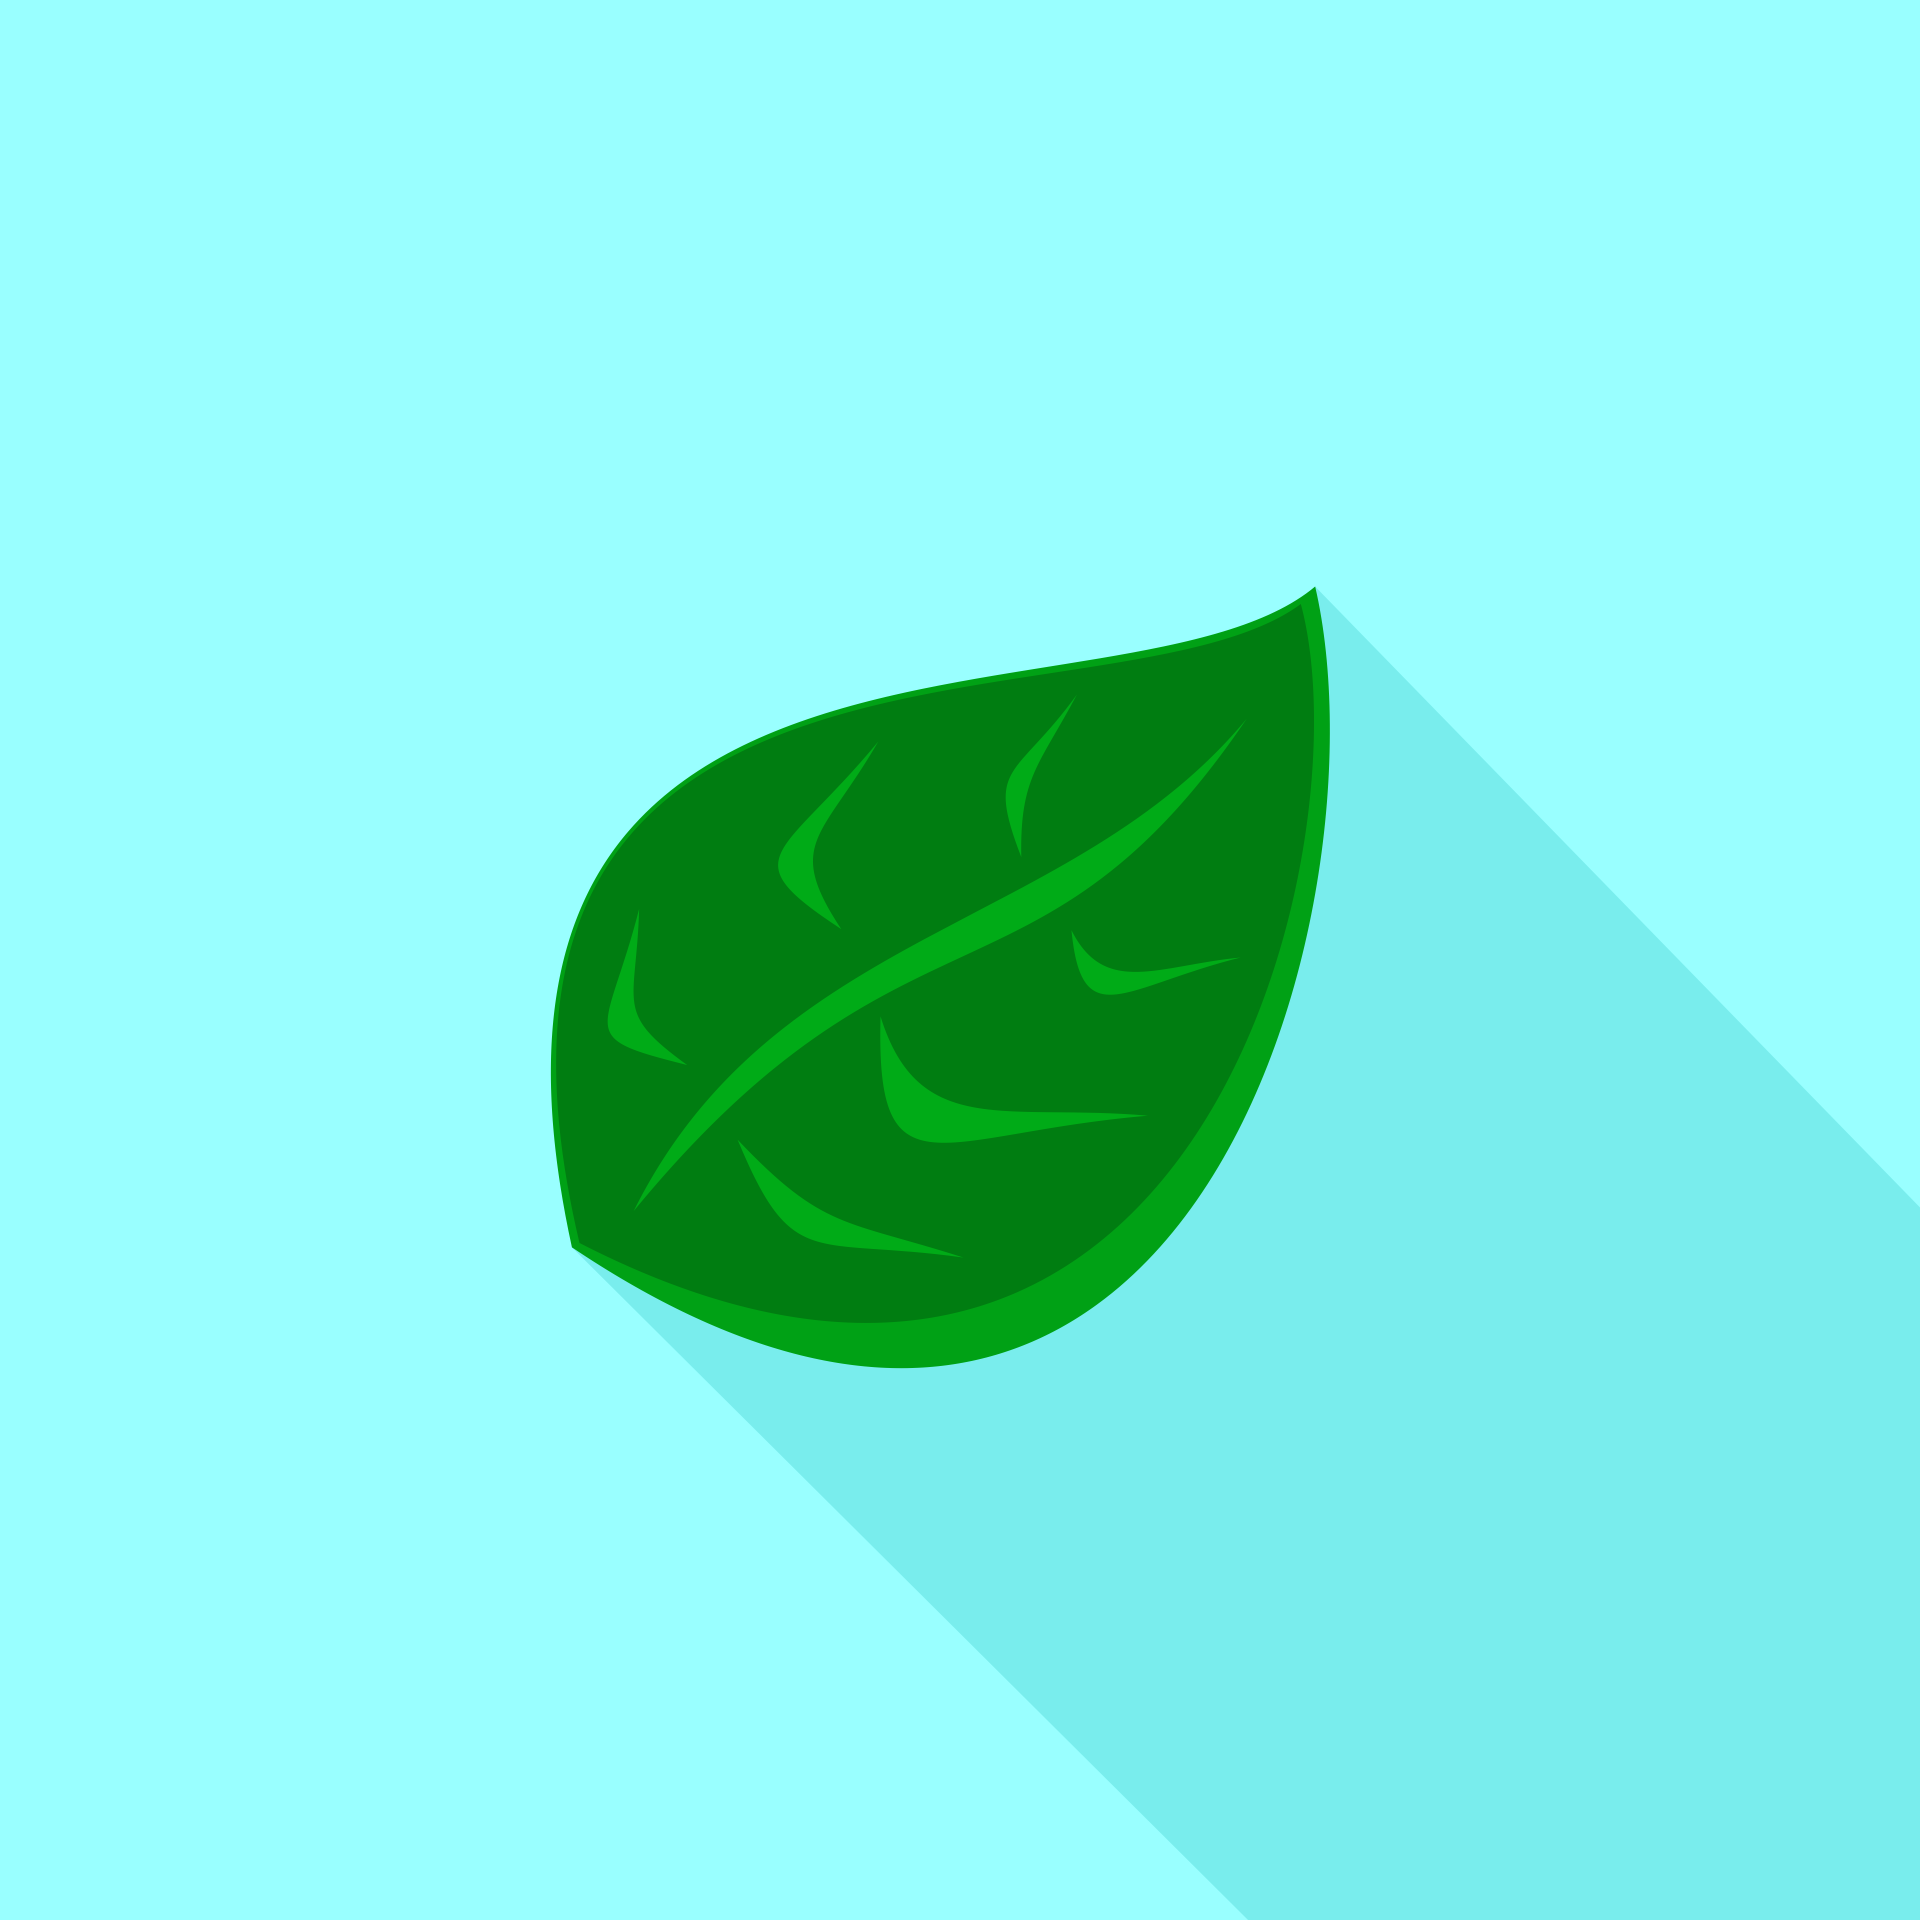 Leaf Icon Download Png Cdr Eps Ai And Svg File Formats At Flatdesign Im Flat Icon Icon Flat Design